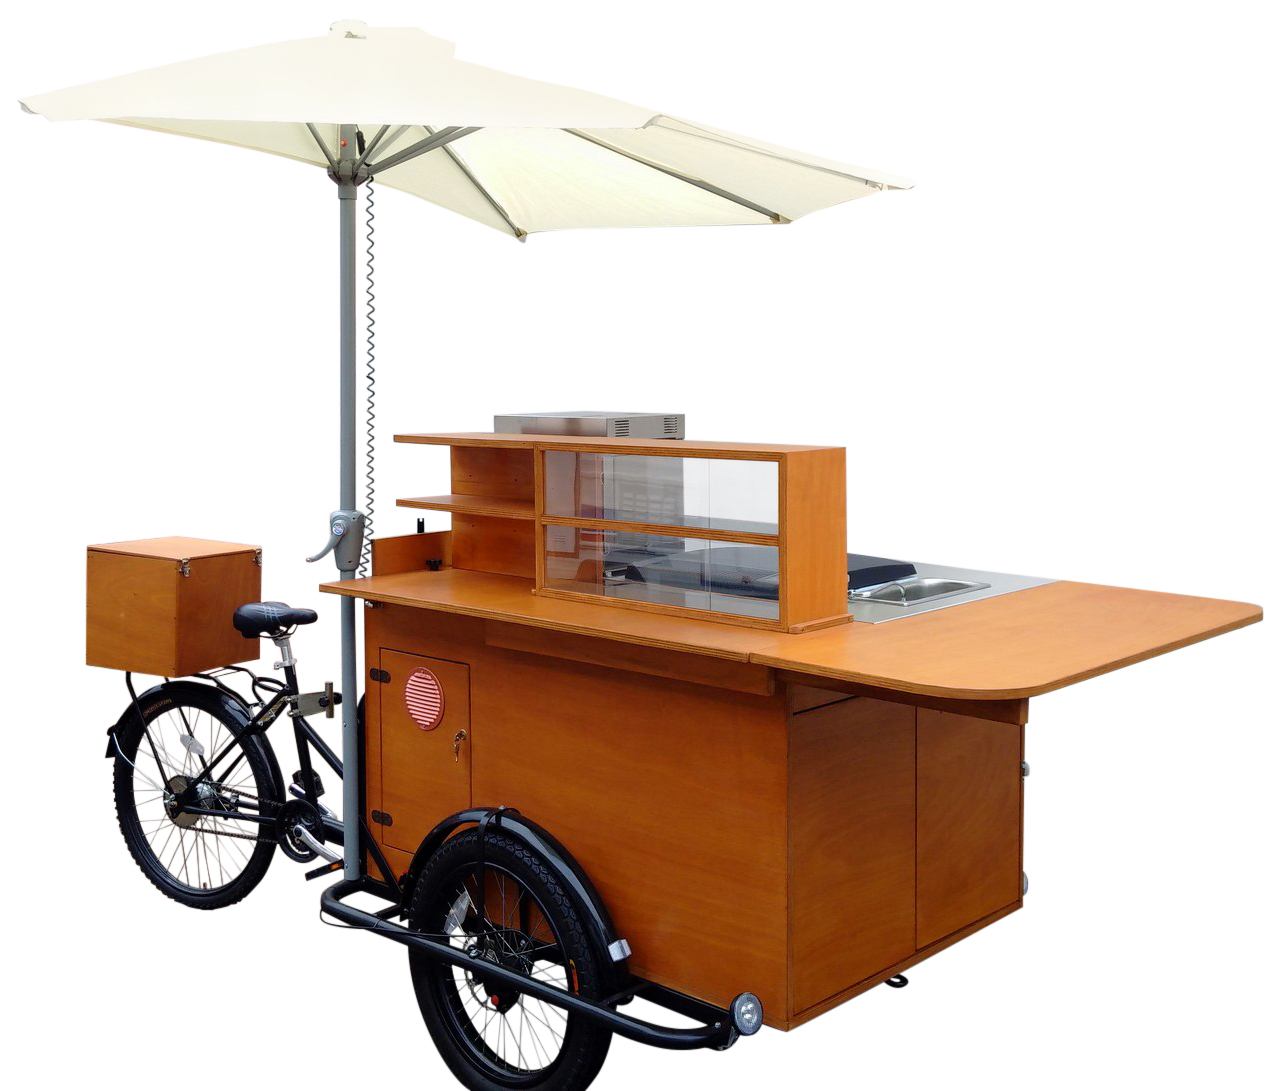 Street_Food_Bike_Cargo_Bike_Banco_Legno_2